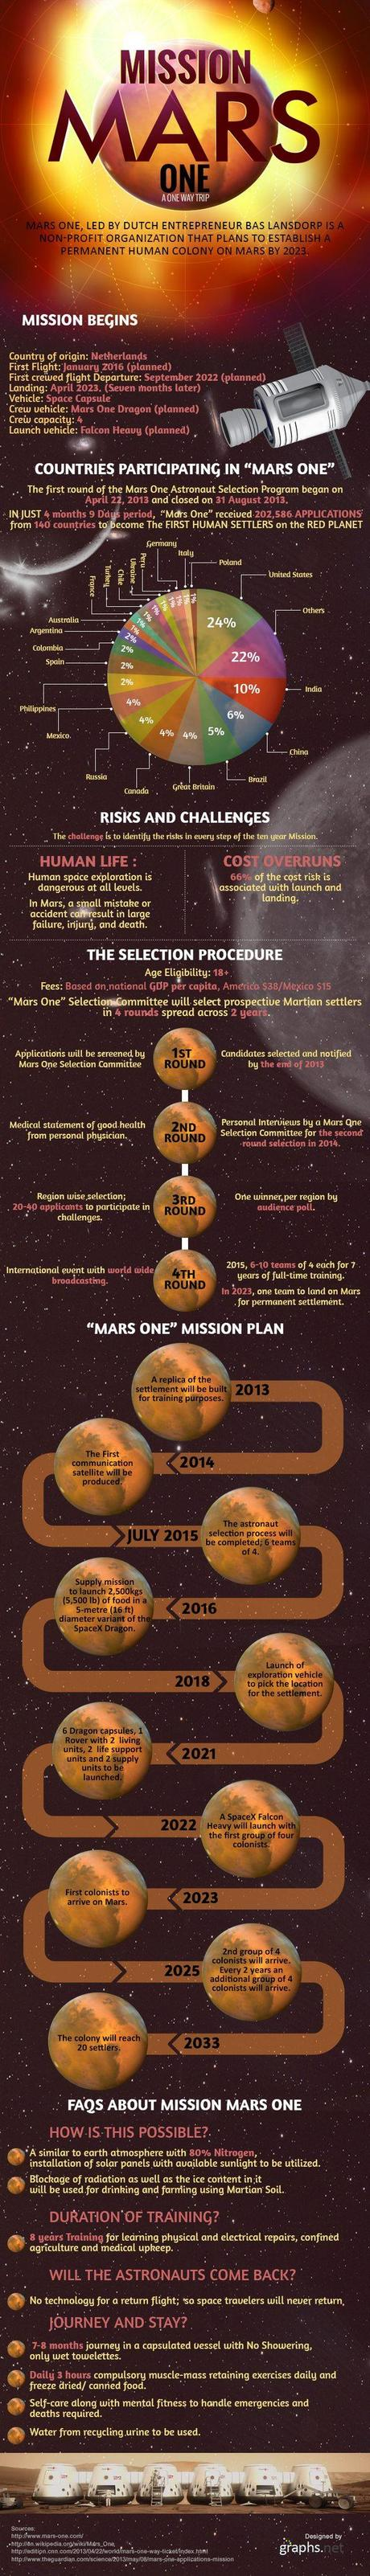 The One Way Trip Mission to Mars Detailed in Infographic ...